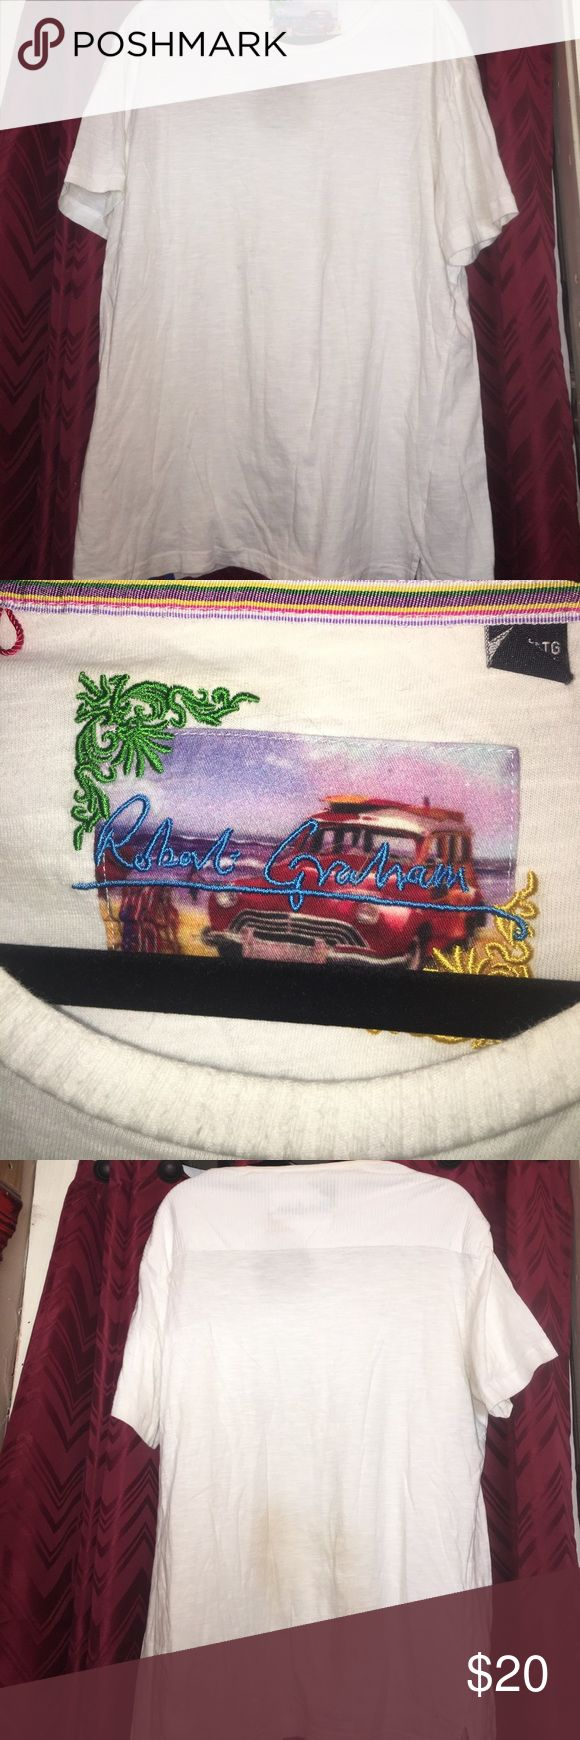 2XL Robert Graham white Tee no stains Great tee 100% cotton. Check out my other mens items Robert Graham Shirts Tees - Short Sleeve